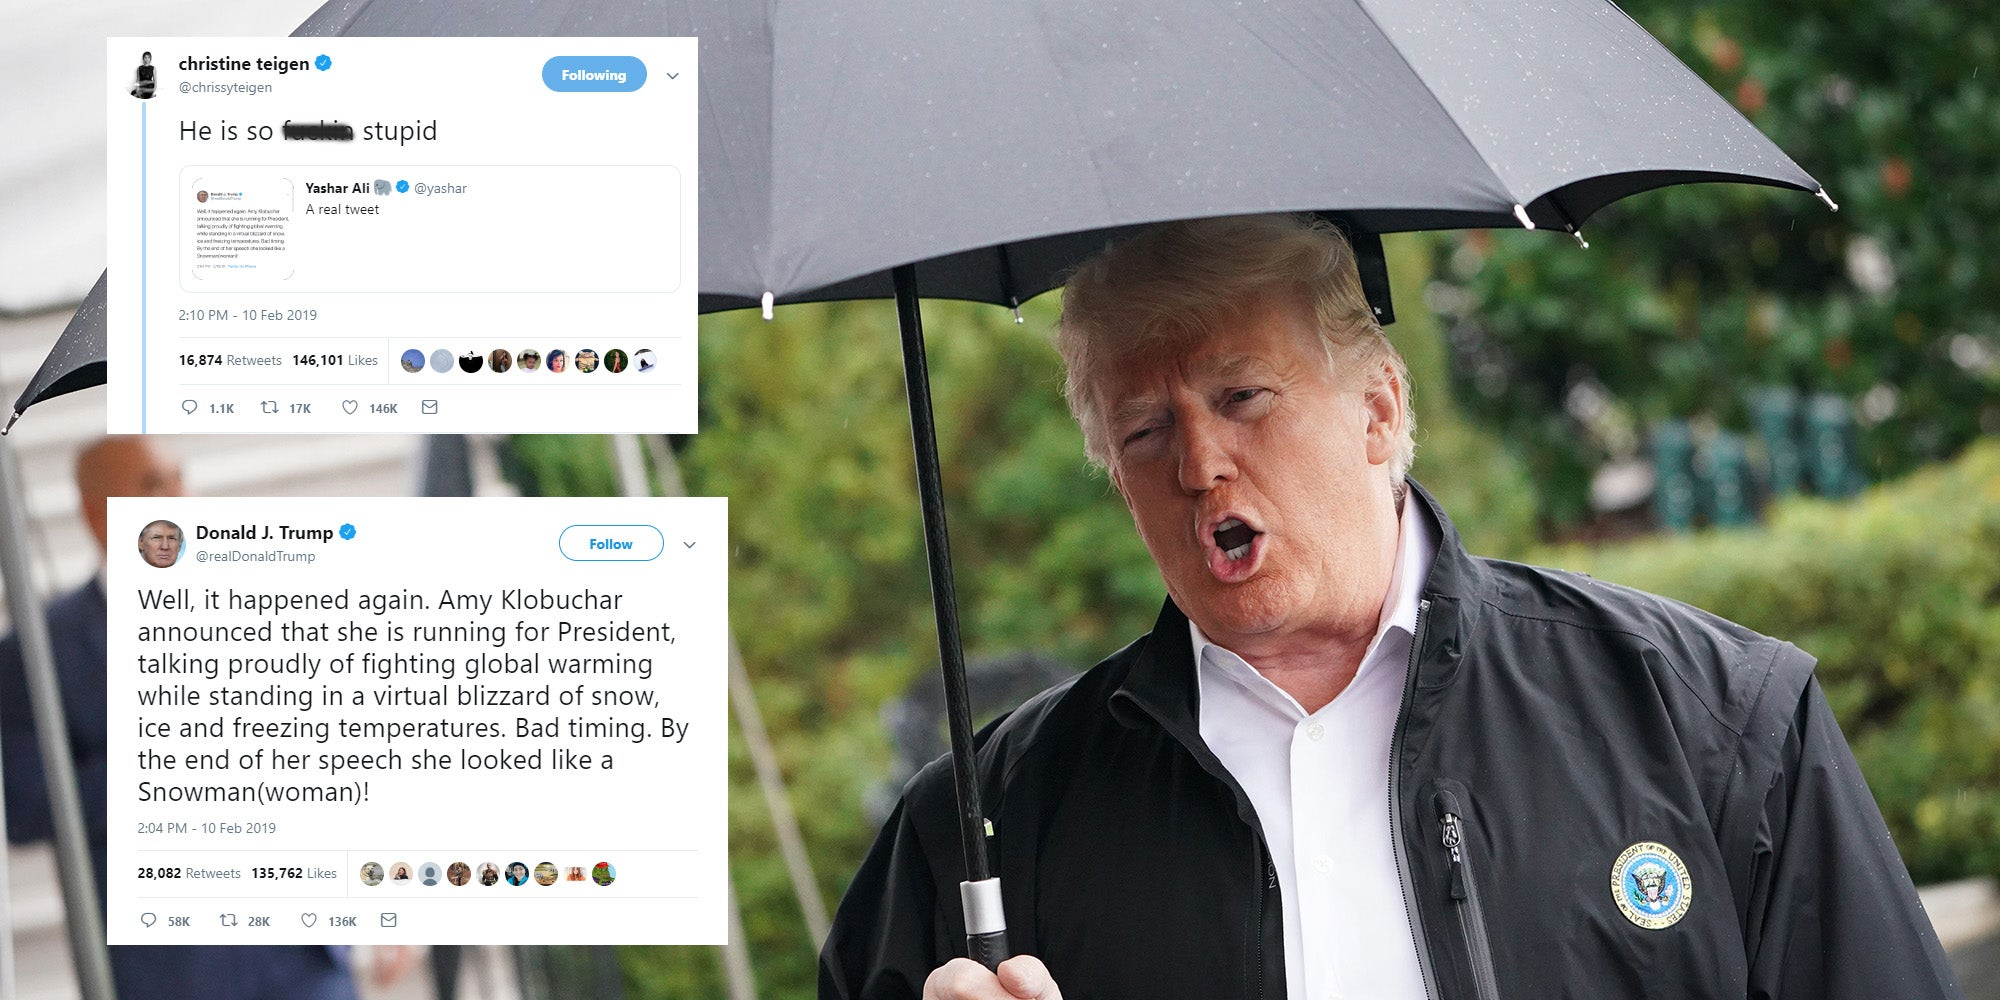 Trump confused global warming with weather again - and it's just getting silly now